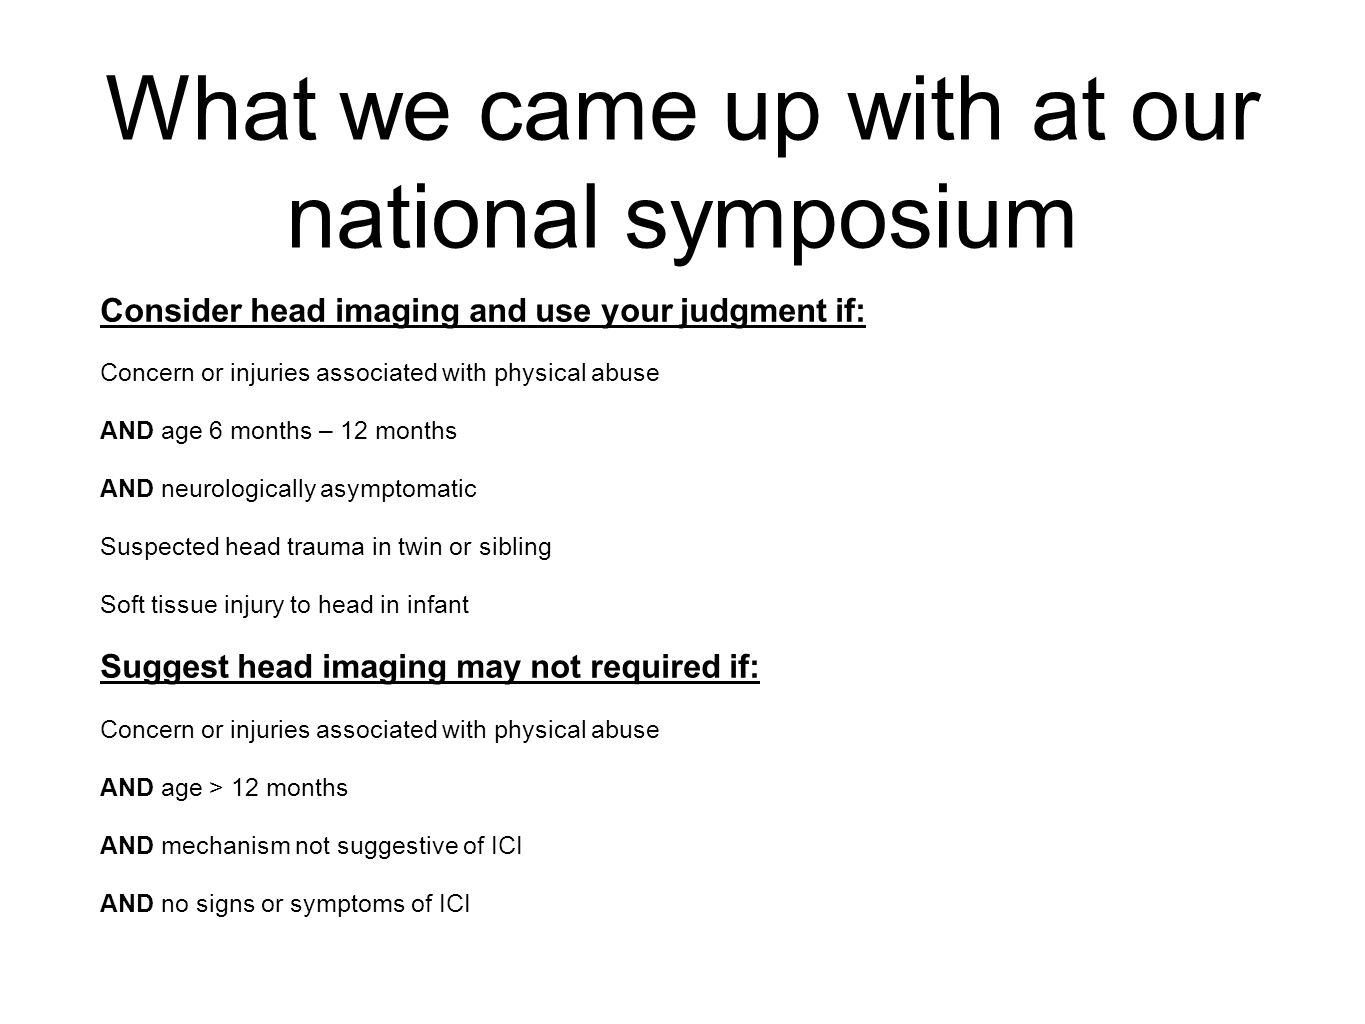 What we came up with at our national symposium Consider head imaging and use your judgment if: Concern or injuries associated with physical abuse AND age 6 months – 12 months AND neurologically asymptomatic Suspected head trauma in twin or sibling Soft tissue injury to head in infant Suggest head imaging may not required if: Concern or injuries associated with physical abuse AND age > 12 months AND mechanism not suggestive of ICI AND no signs or symptoms of ICI